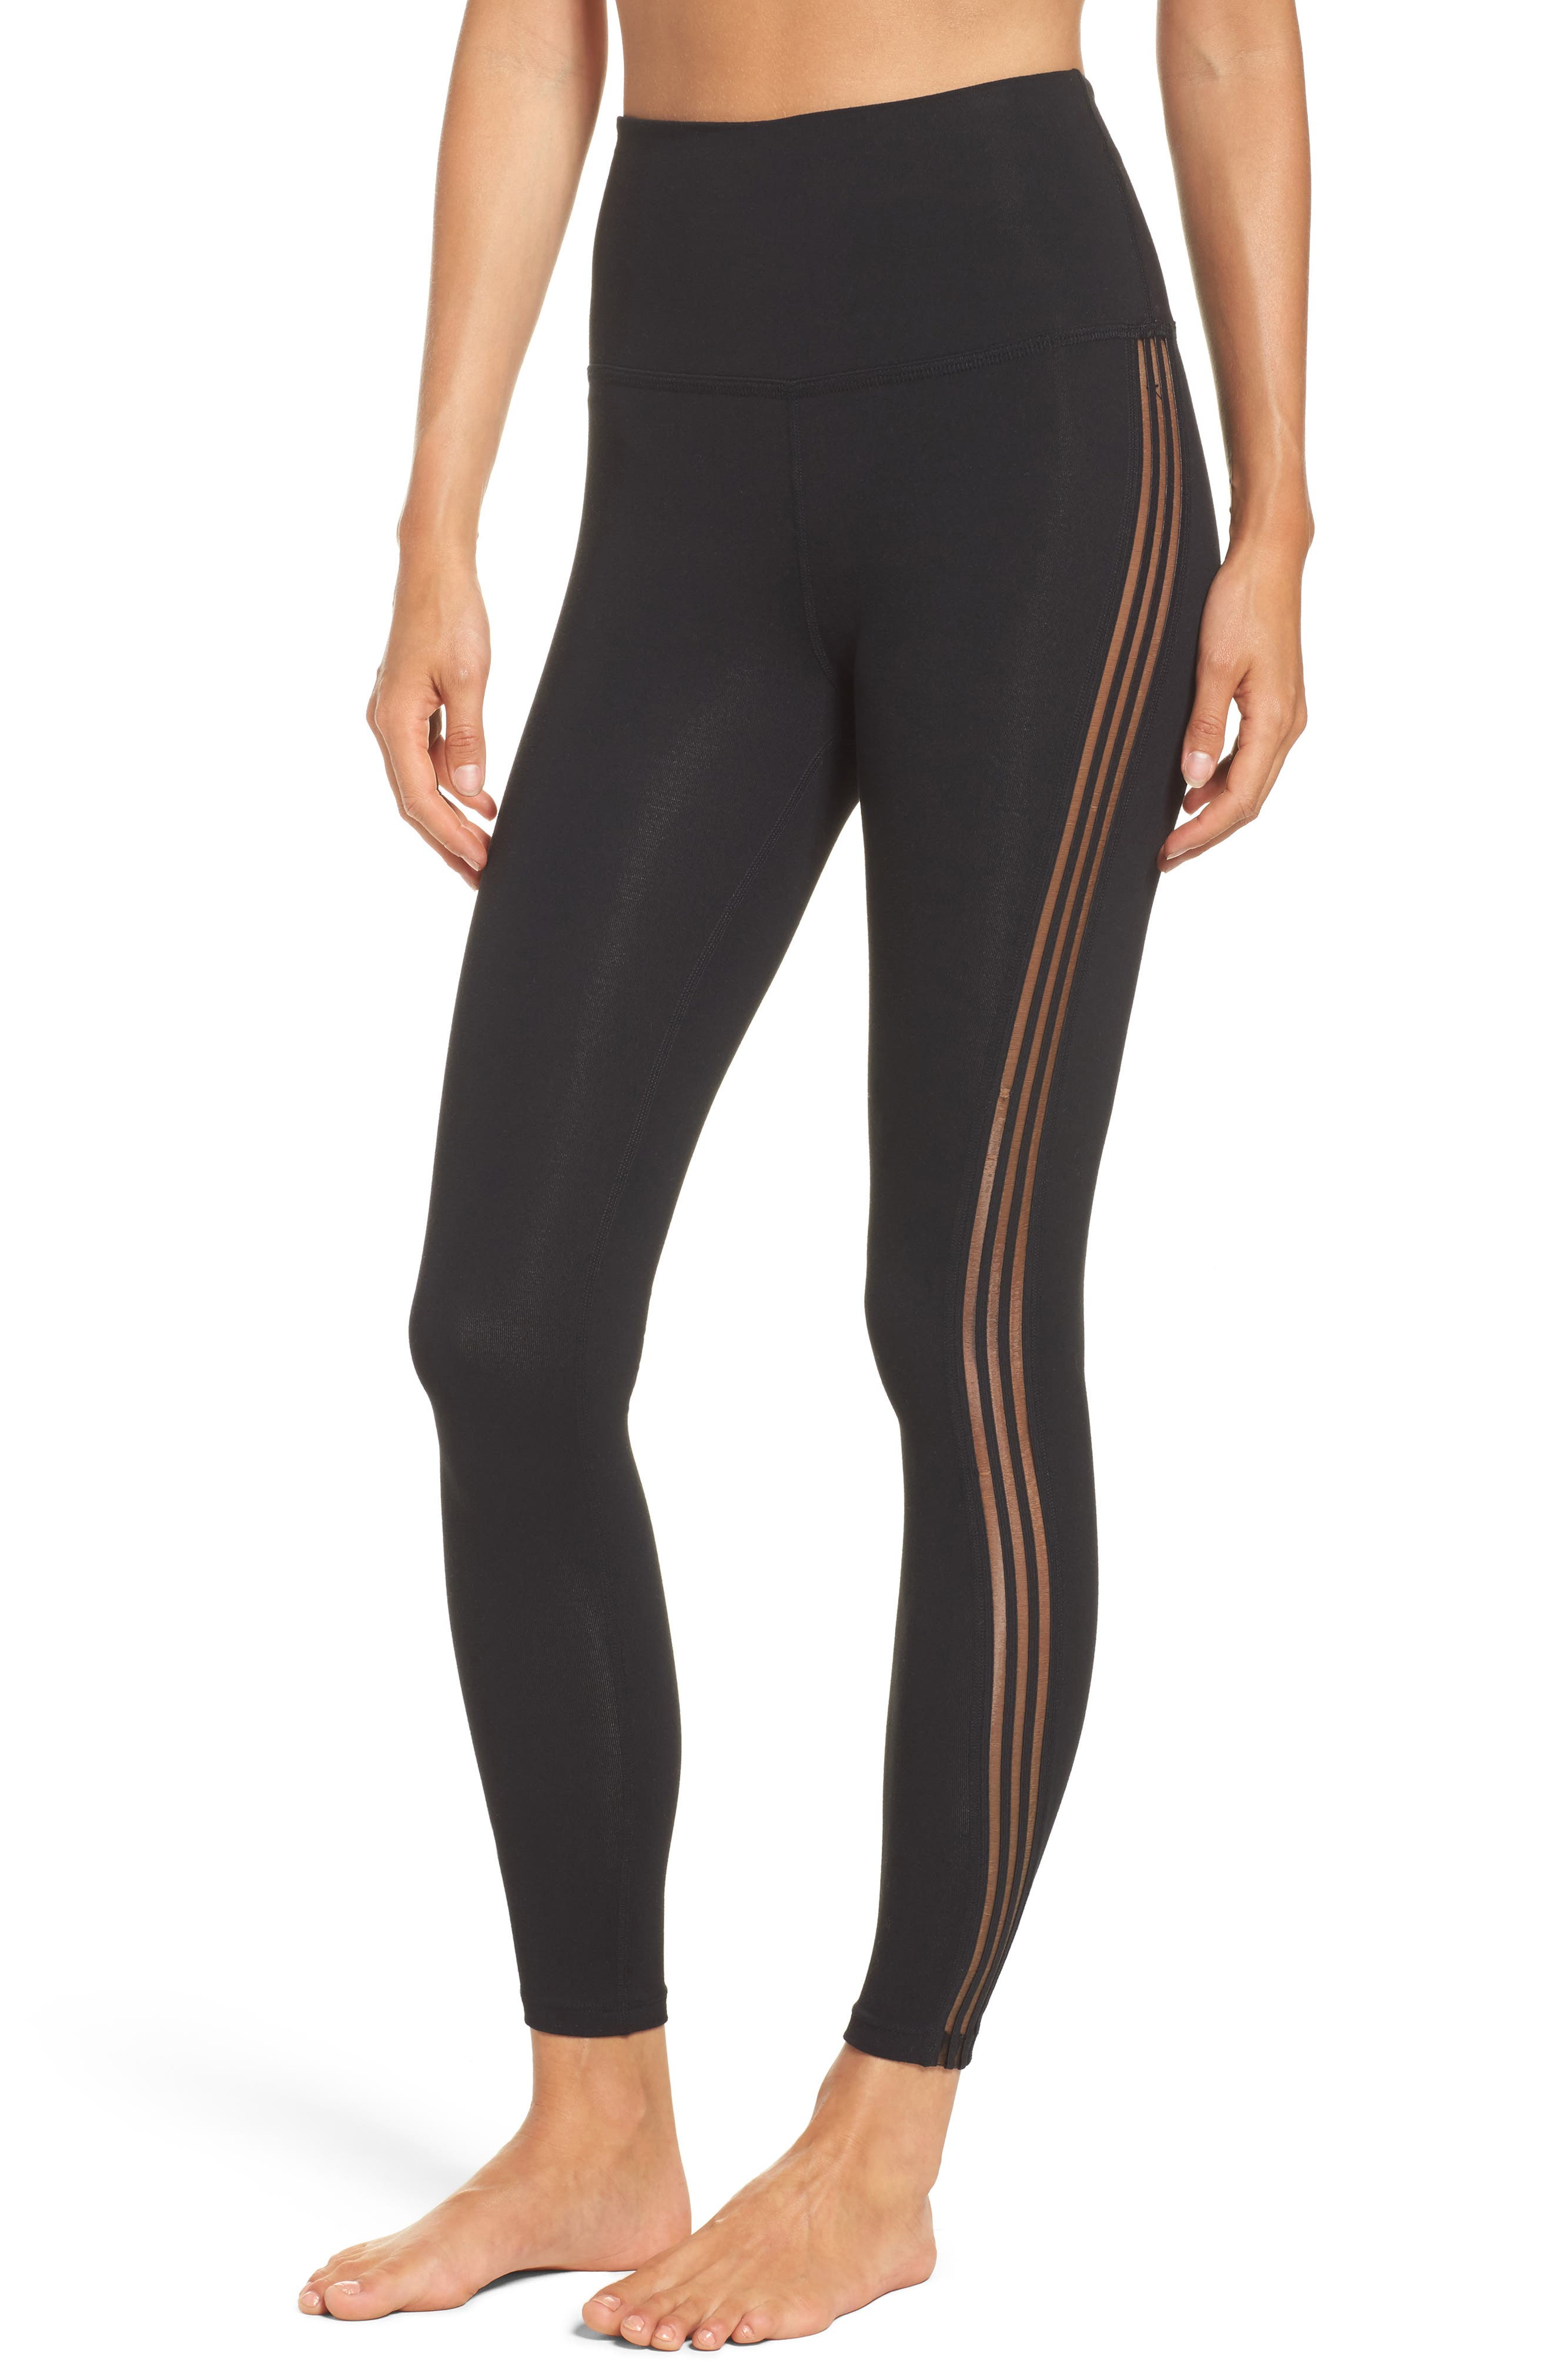 Beyond Yoga Sheer Illusion High Waist Leggings